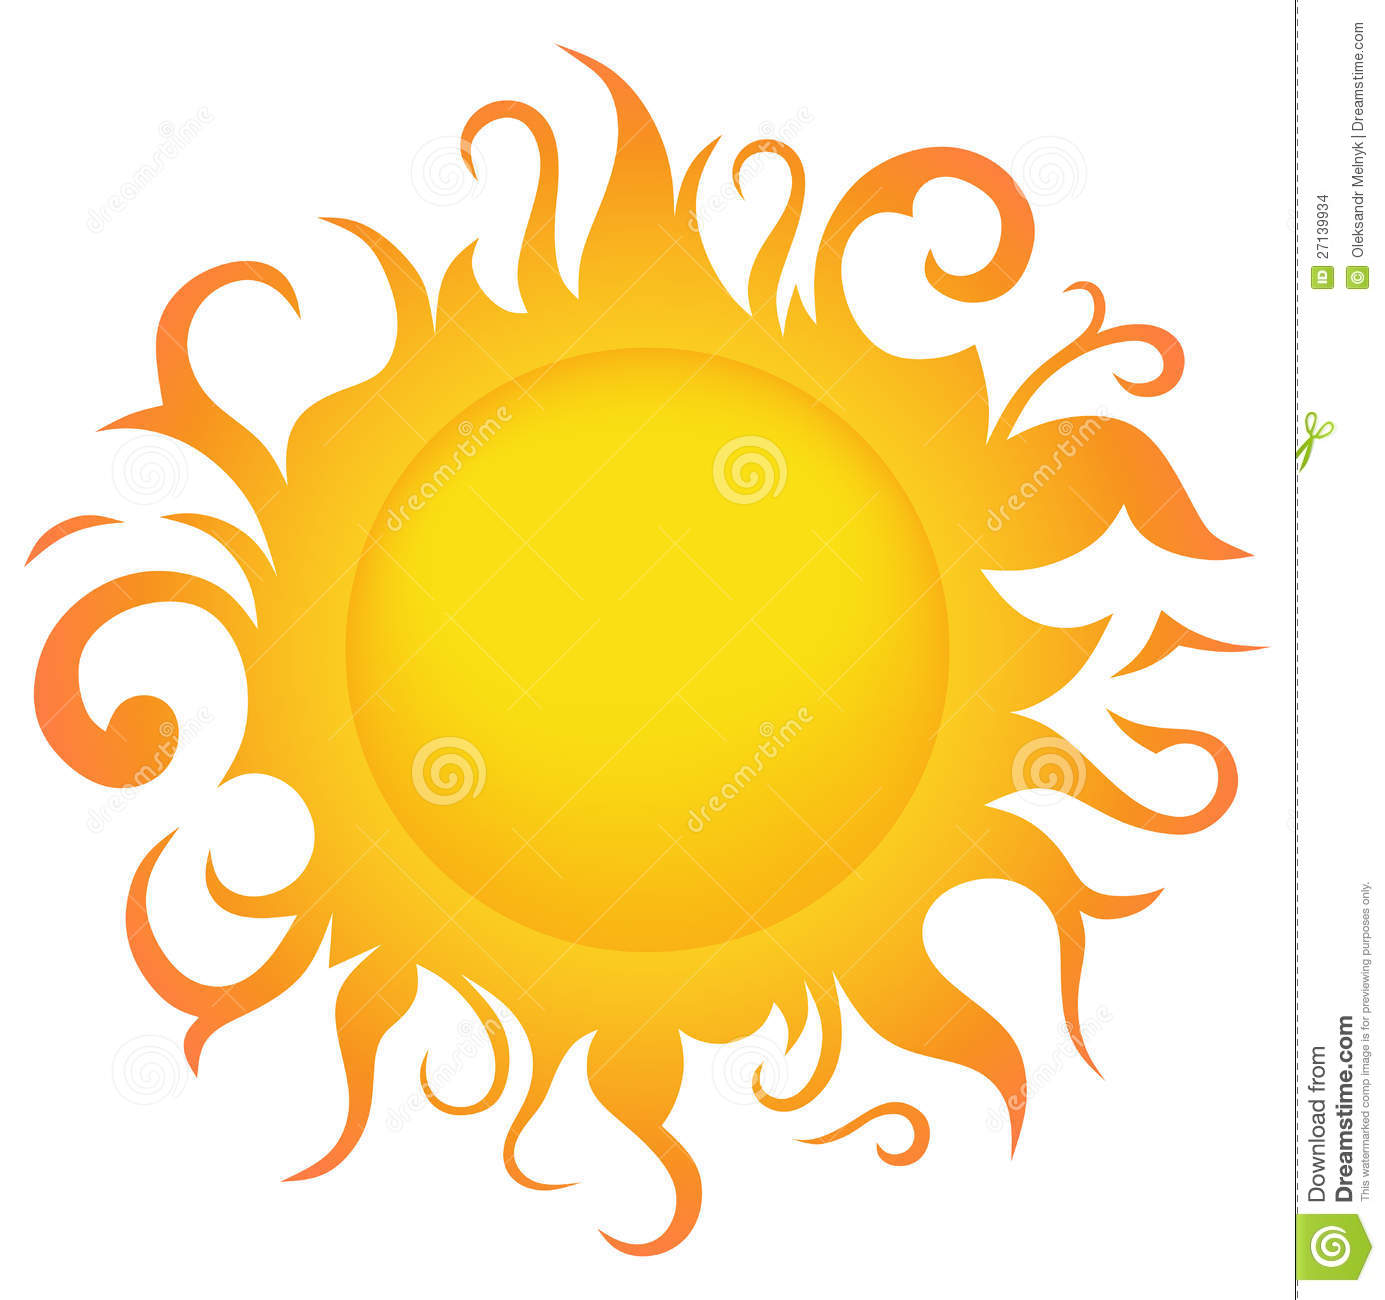 Symbol Sun Stock Images - Image: 27139934